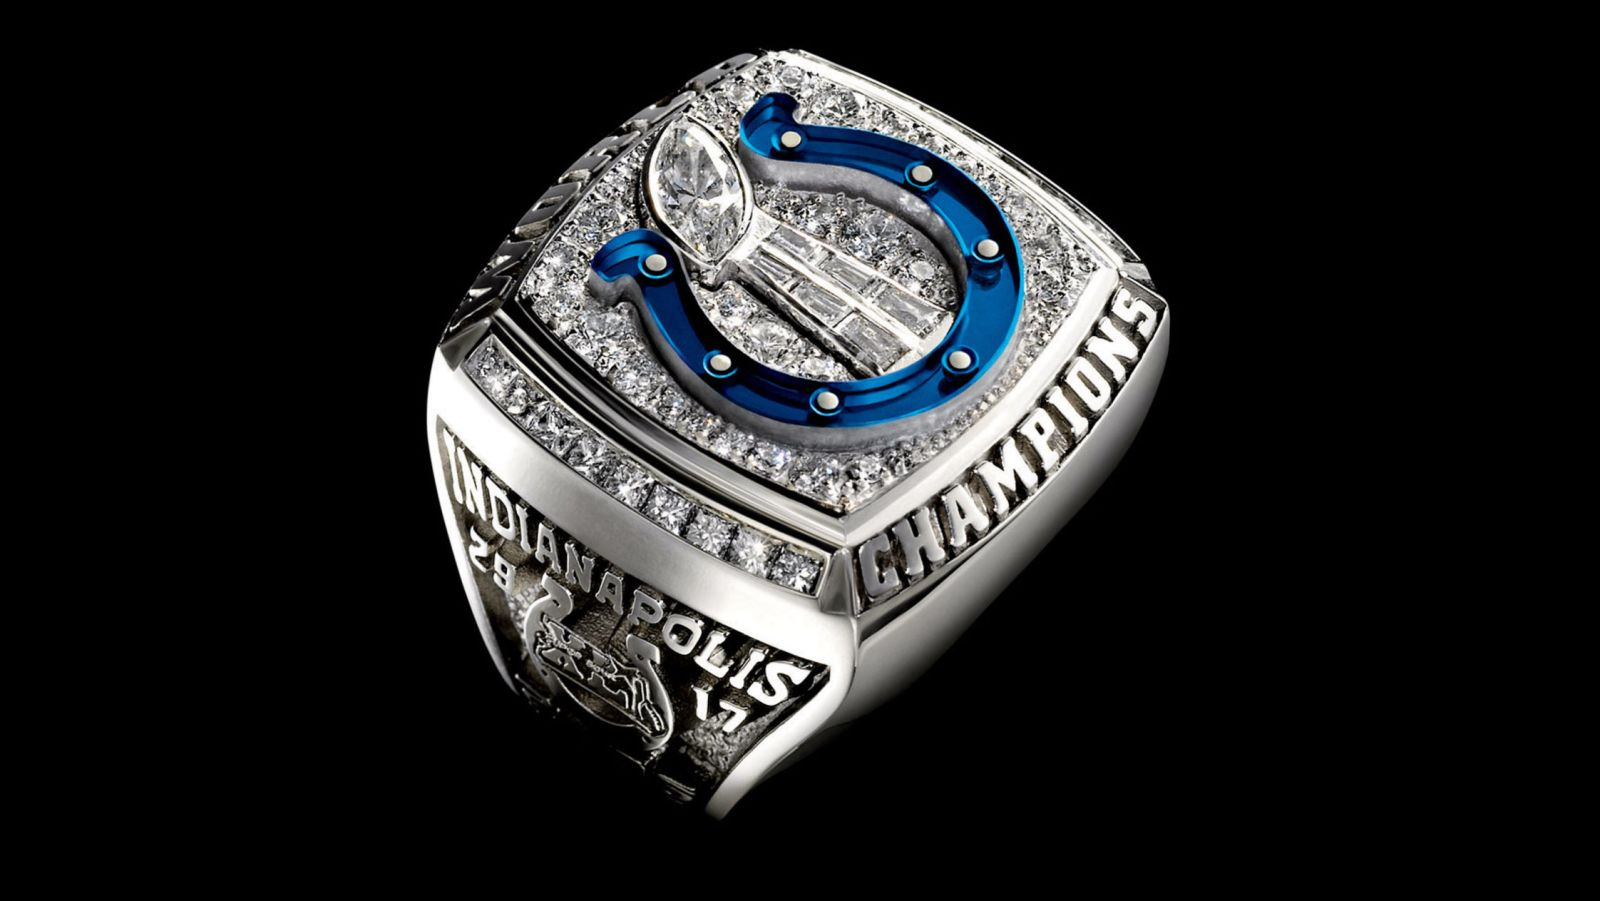 2006 Indiana Colts Super Bowl Championship Ring